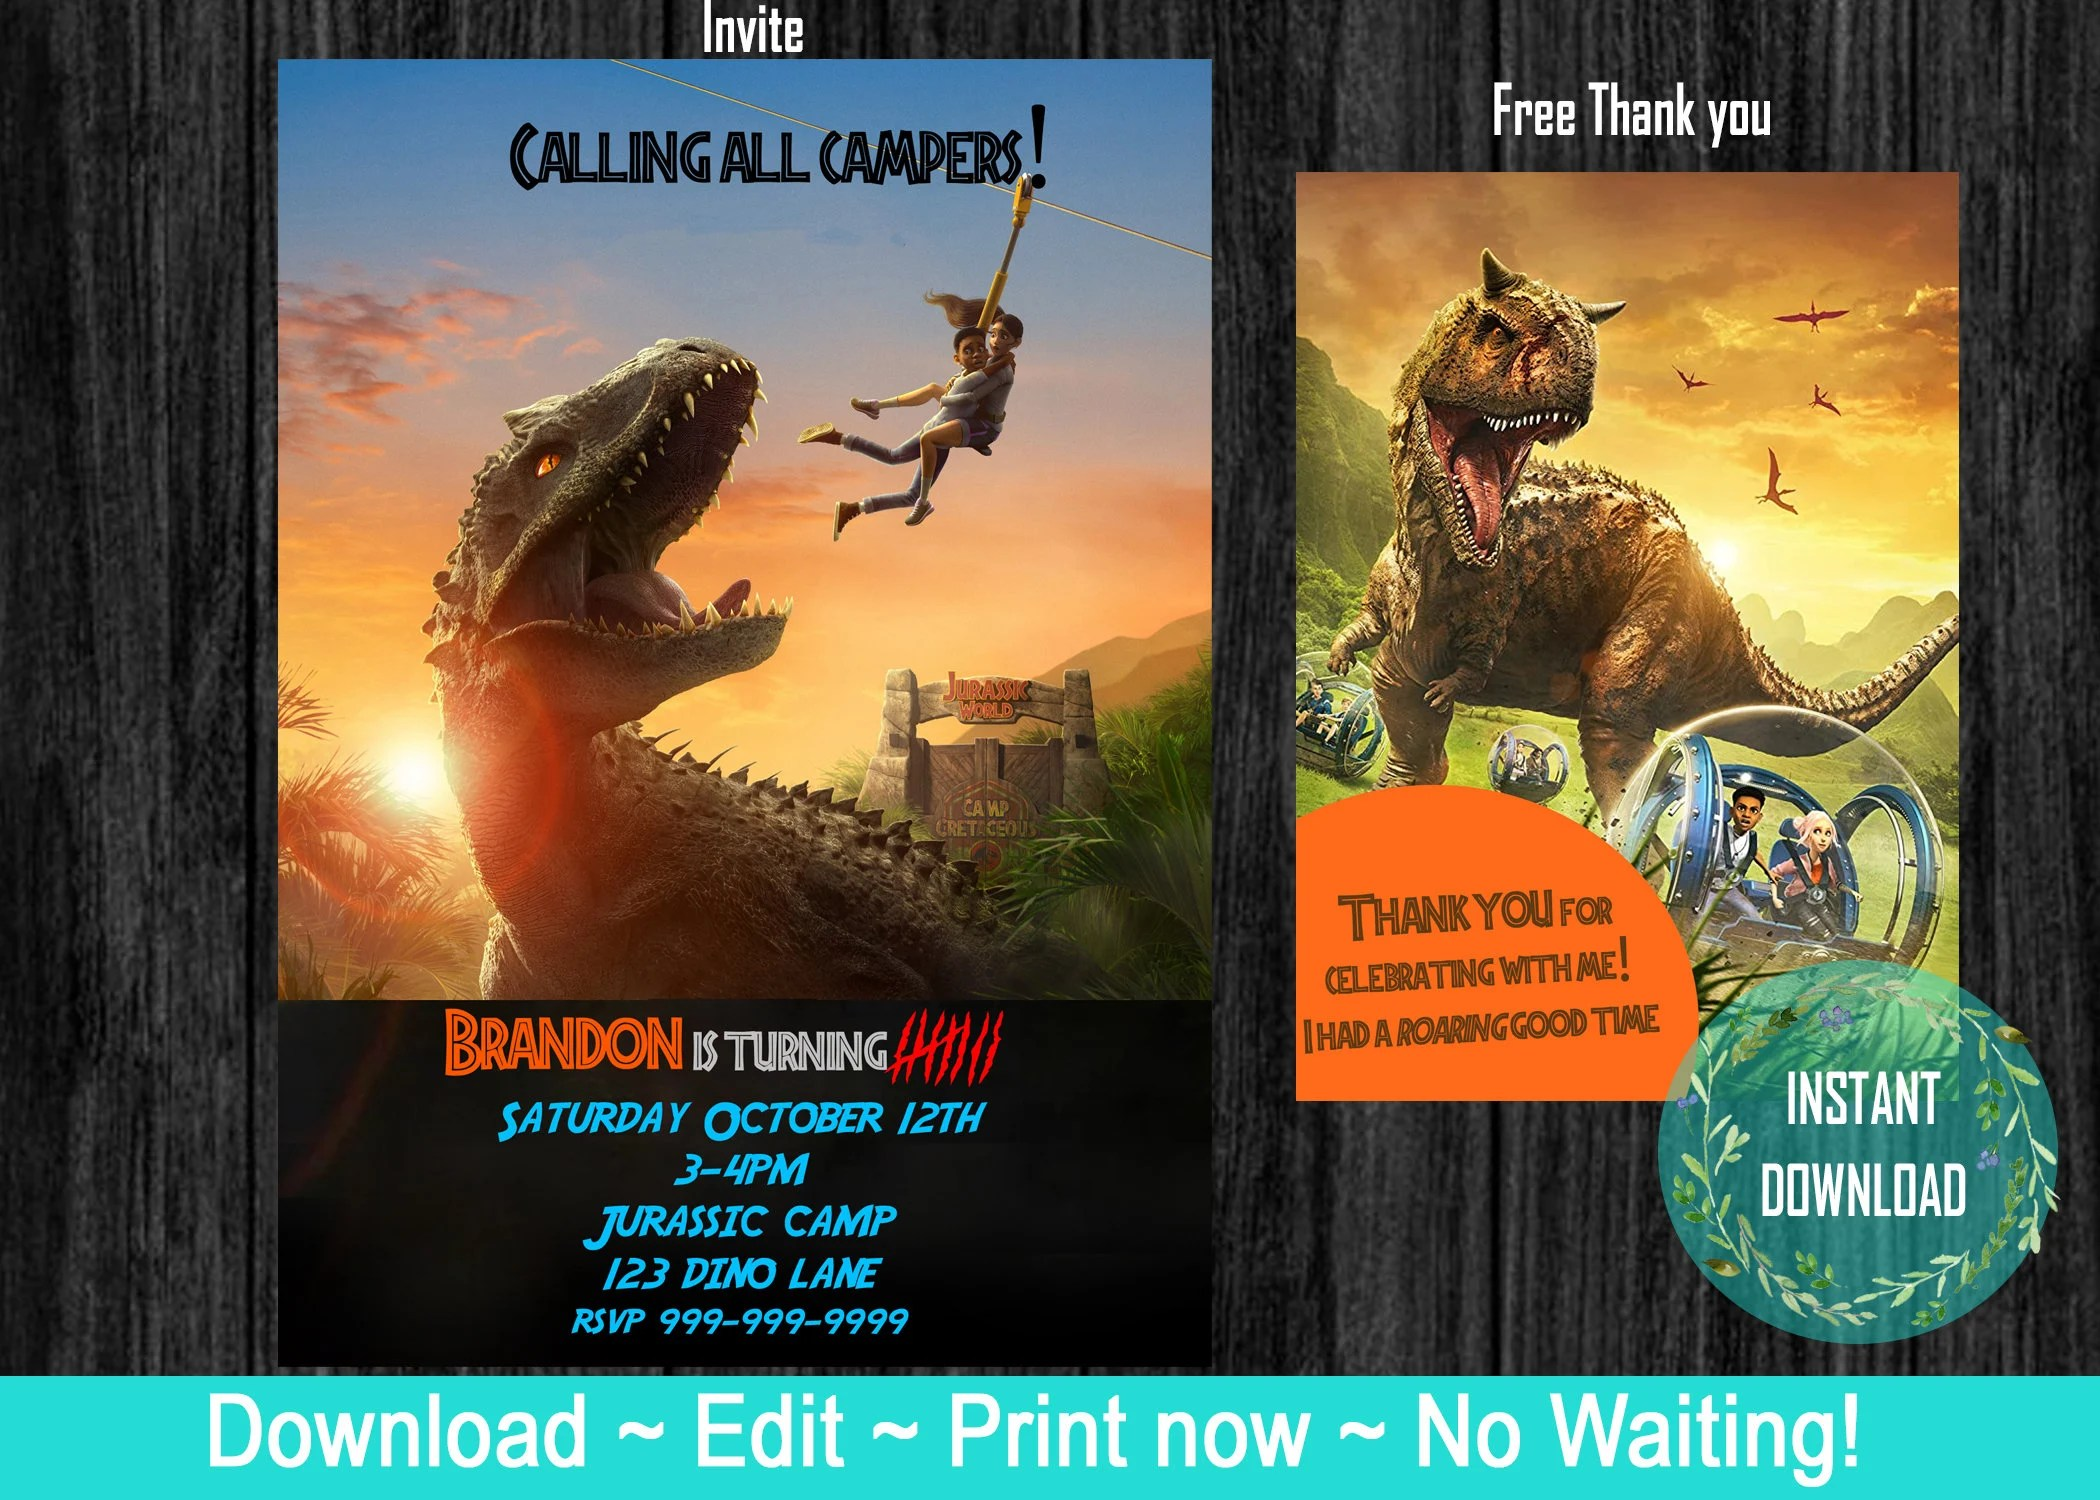 jurassic park camp camp cretaceous jurassic world birthday invite with free thank you